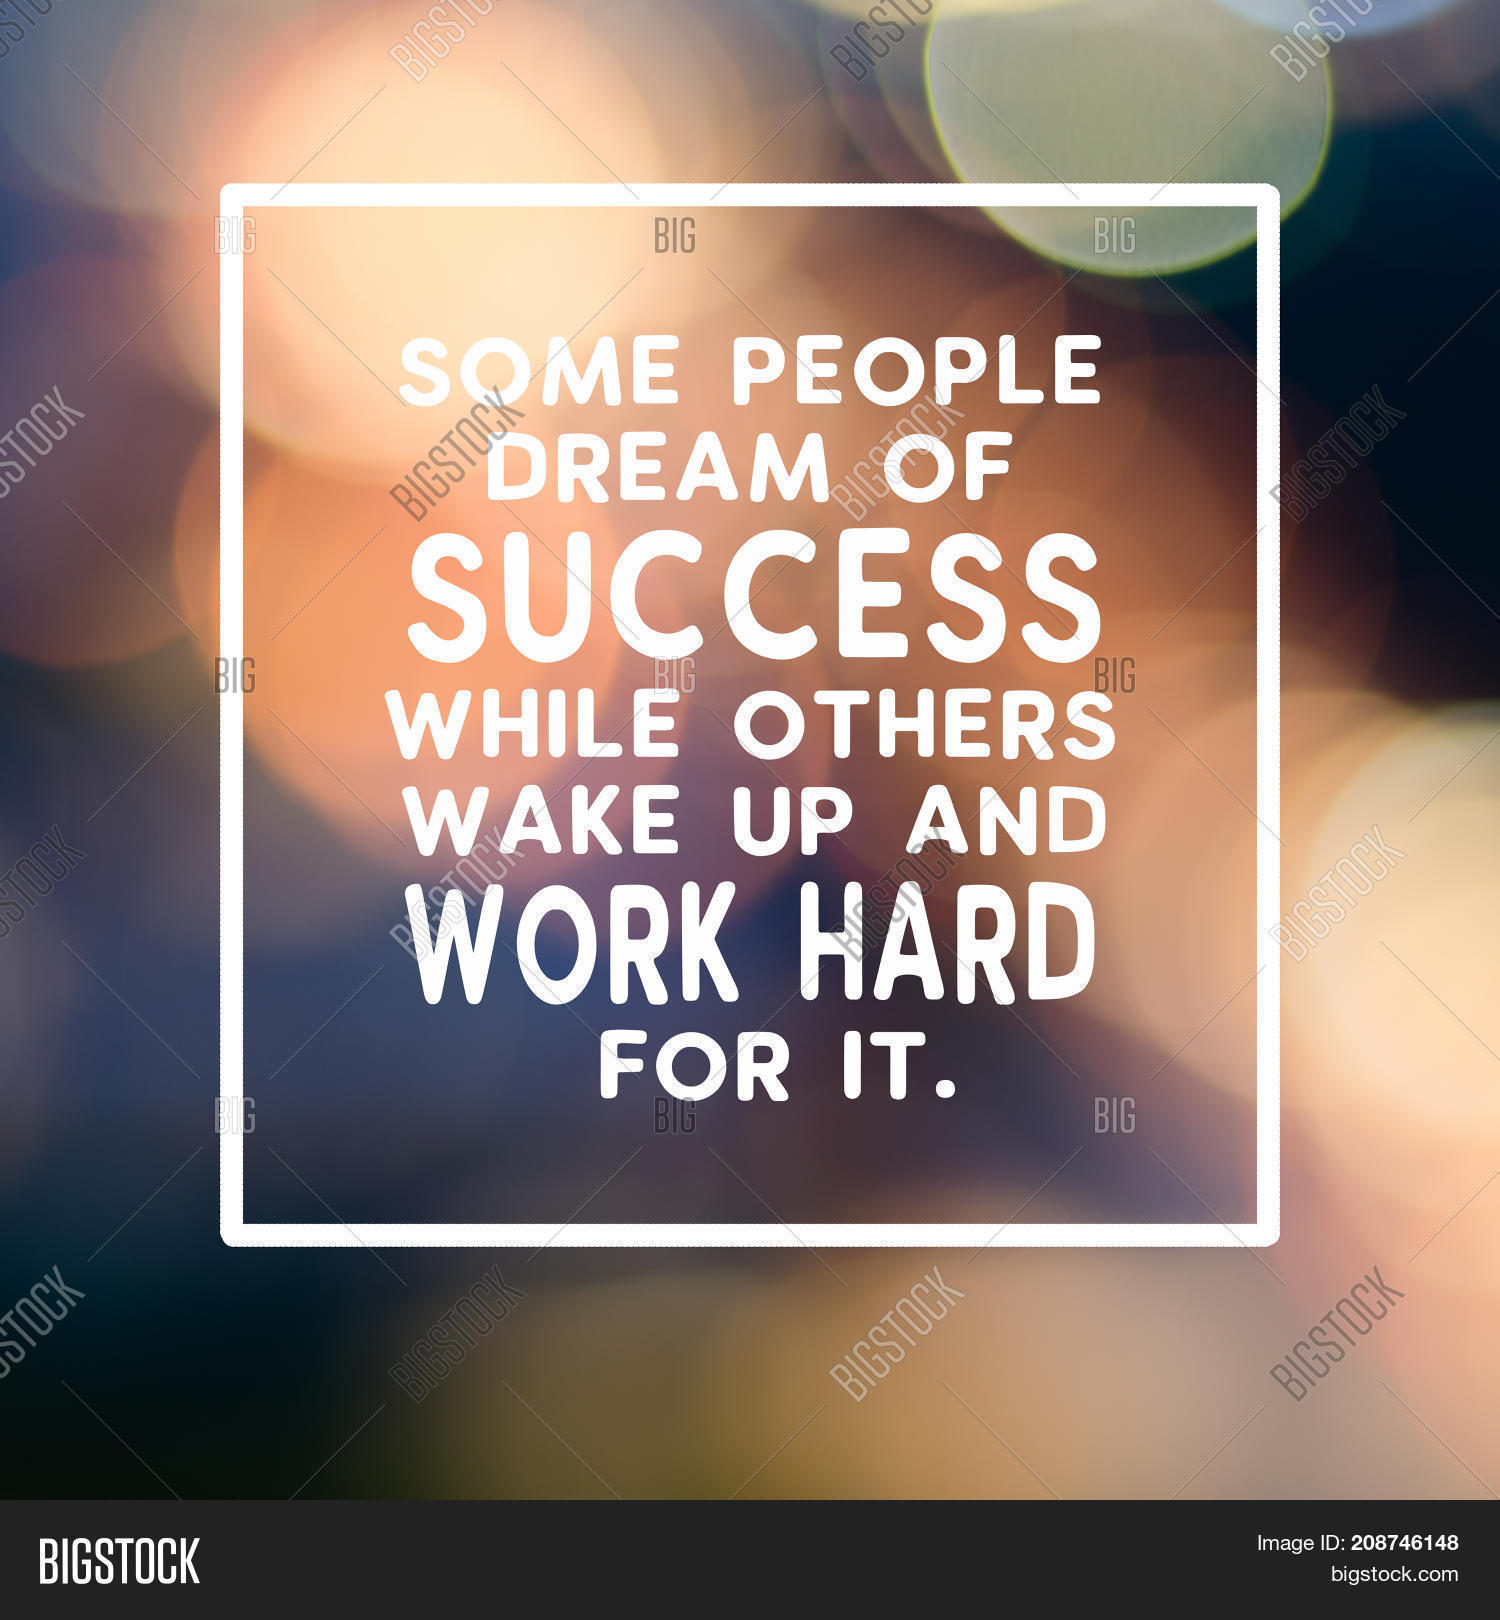 Motivational Image Photo Free Trial Bigstock